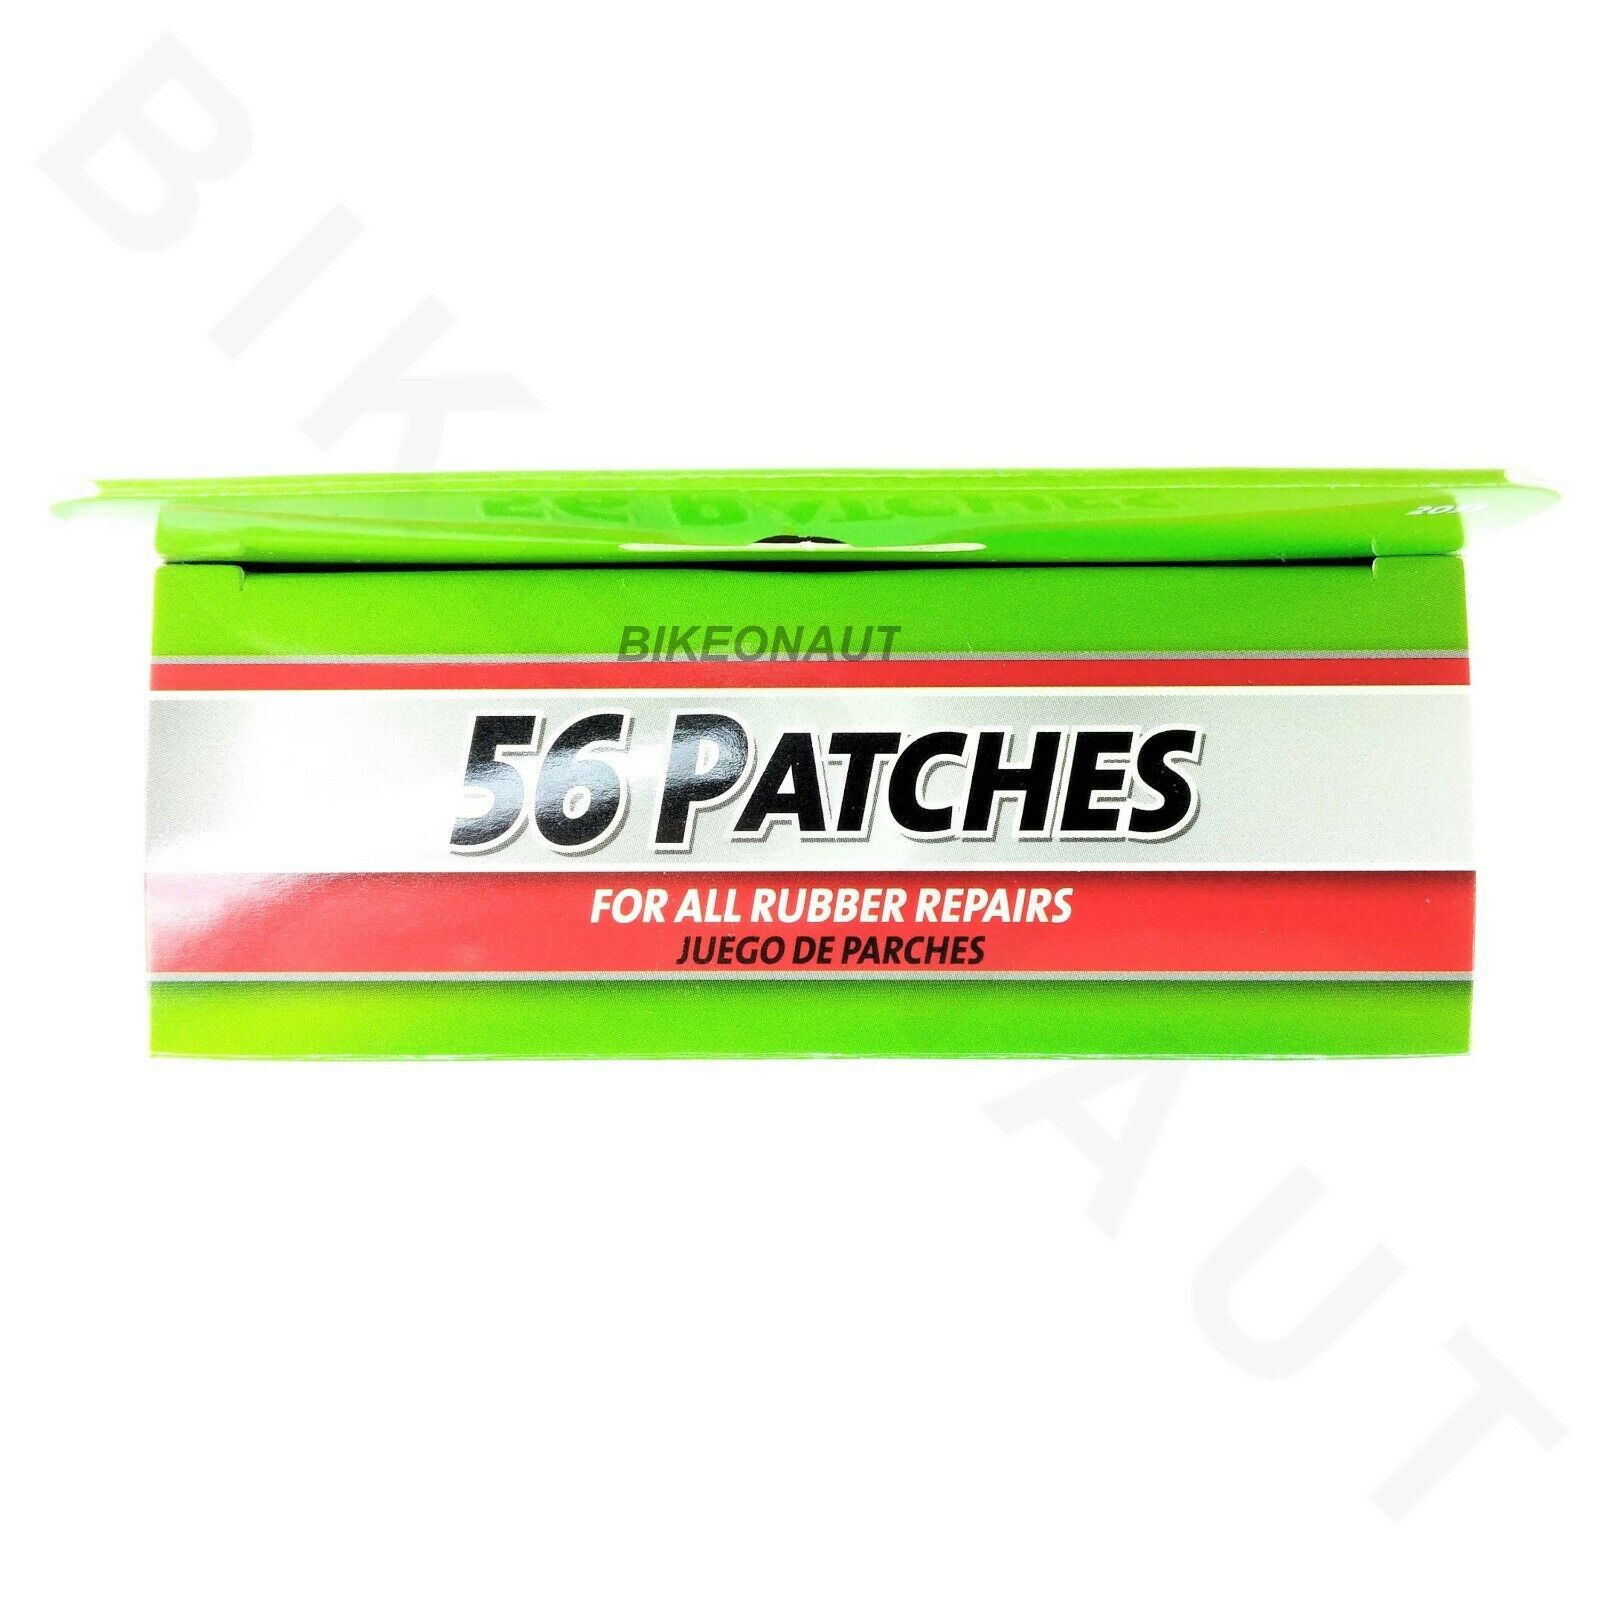 Slime 2033 56 Patches With Rubber Cement for sale online